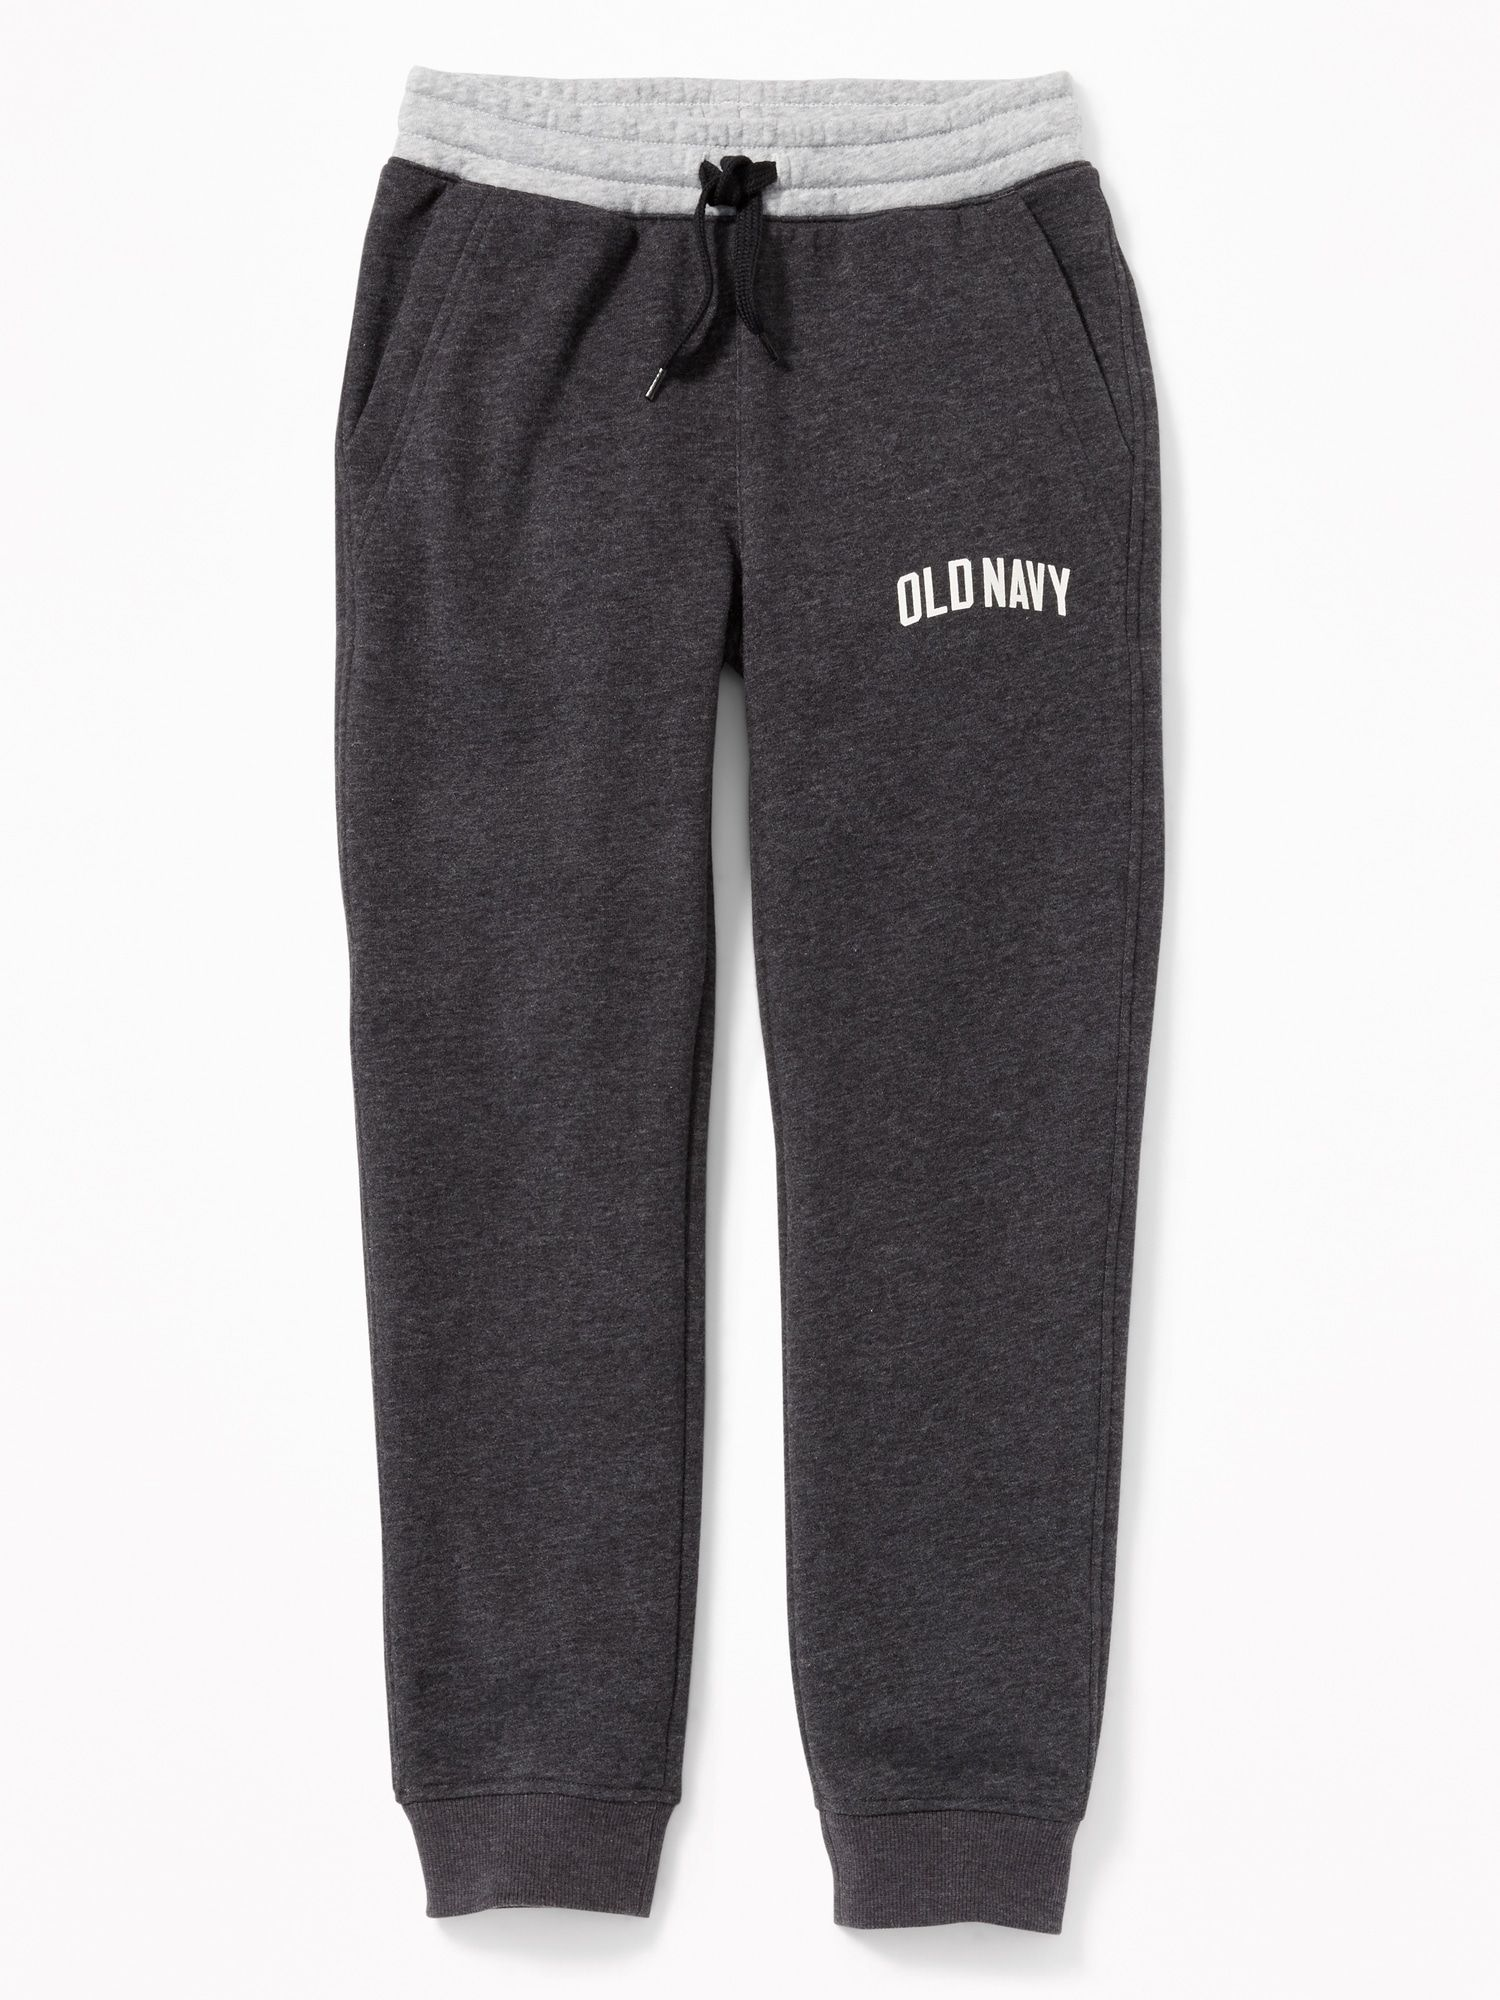 LogoGraphic Joggers for Boys Navy logo, Old navy, Joggers